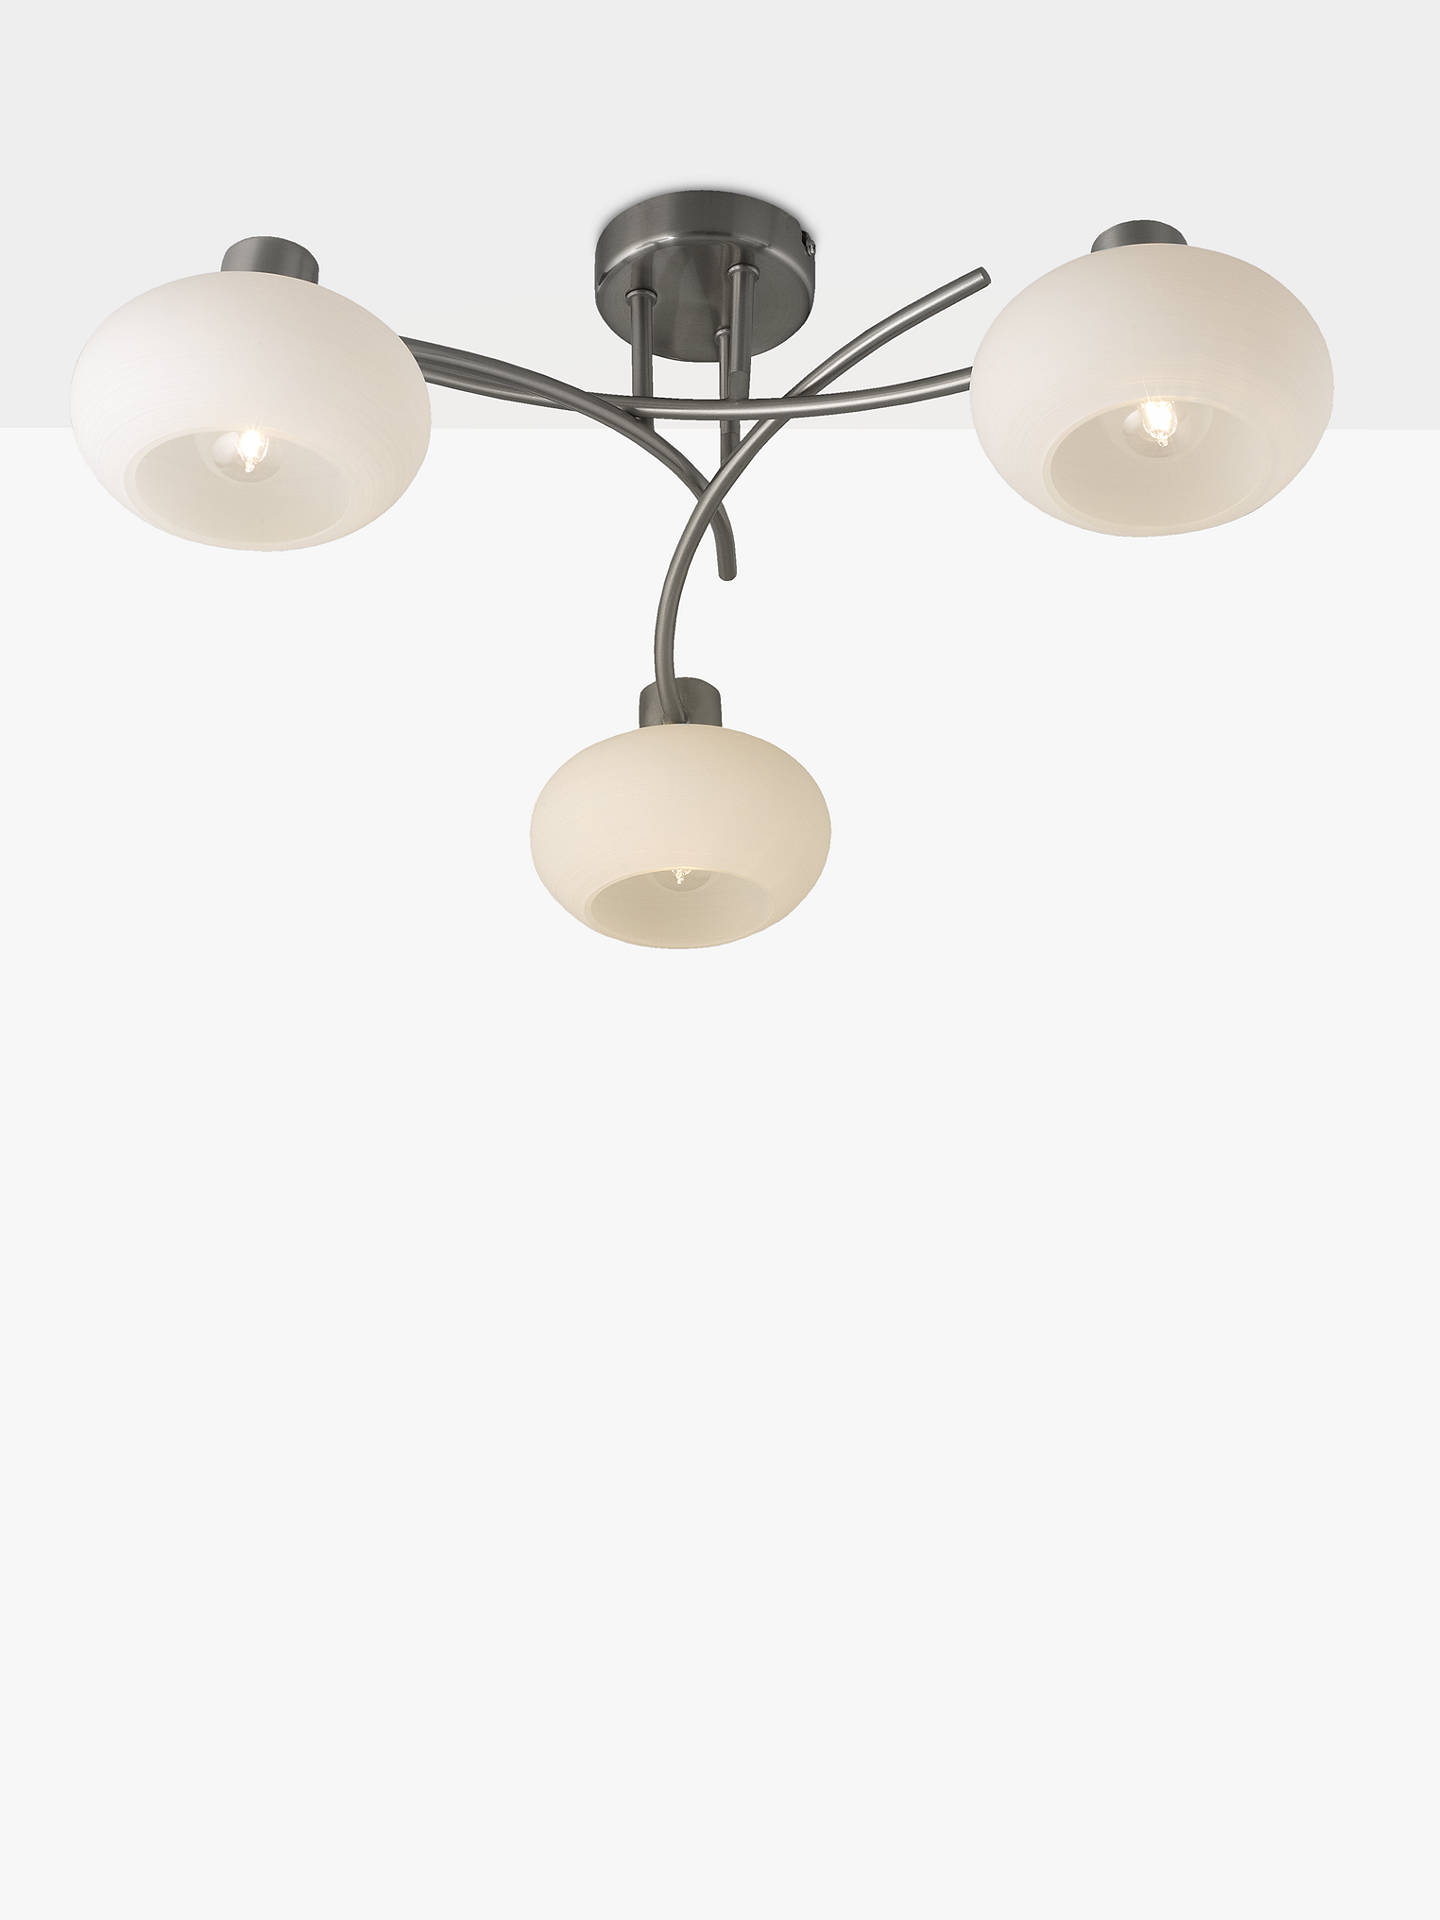 BuyJohn Lewis & Partners Elio 3 Arm Ceiling Light Online at johnlewis.com